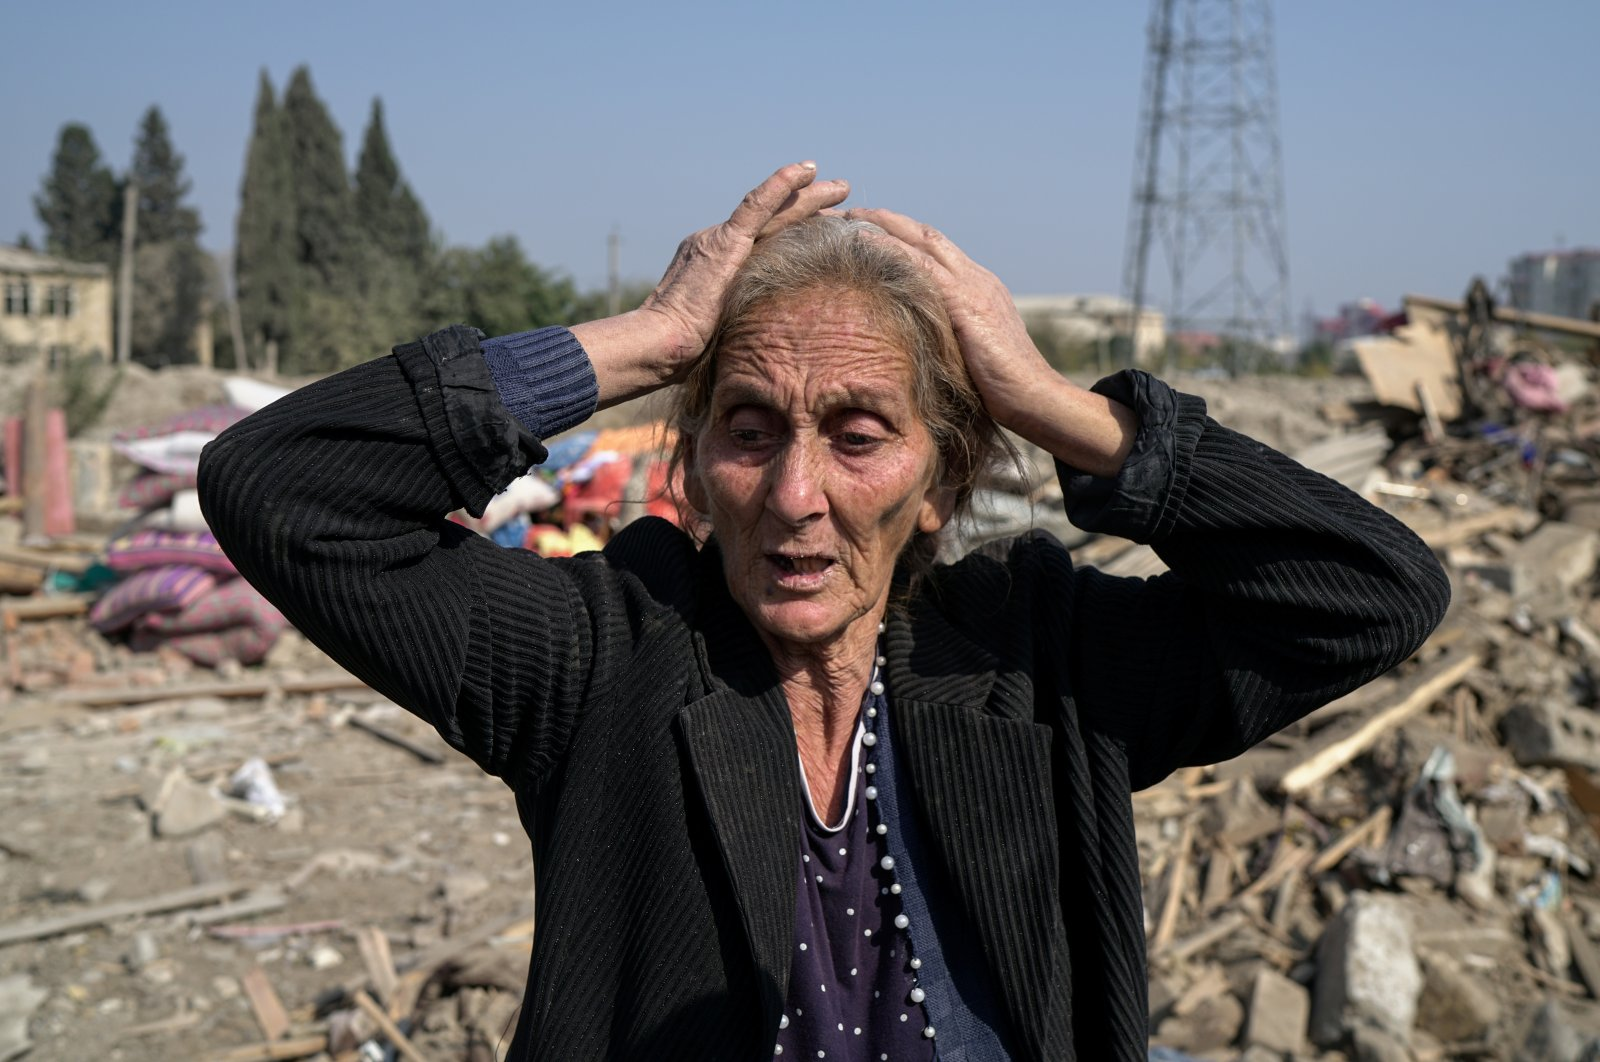 Regibe Guluyeva, 67, reacts as she stands on the ruins of her home, which was hit by an Armenian rocket, in the city of Ganja, Azerbaijan Oct. 18, 2020. REUTERS